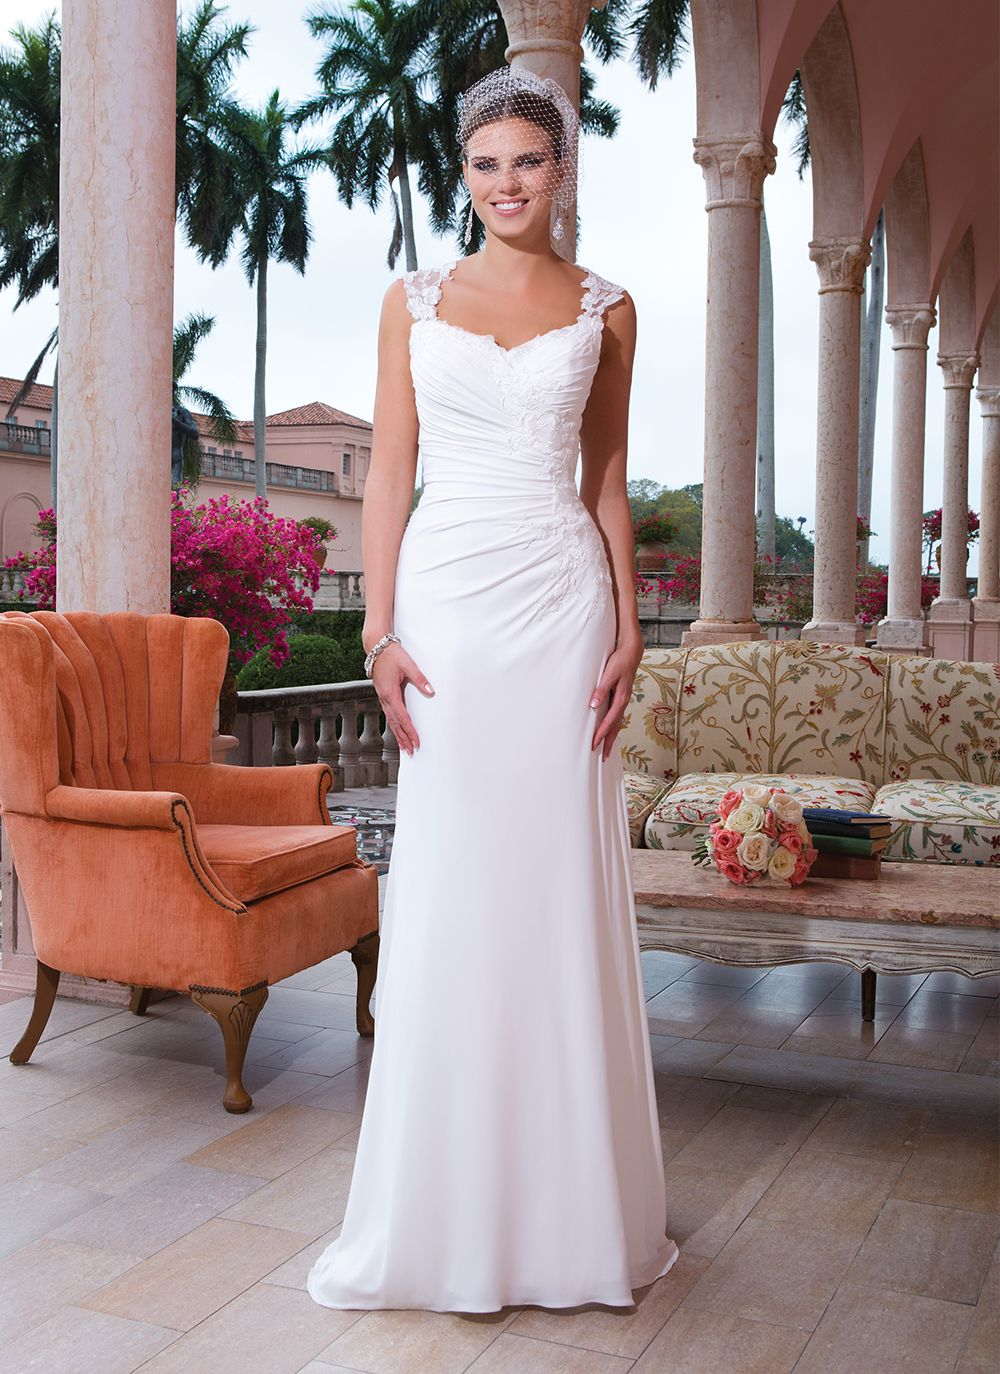 Sweetheart wedding gowns style available colours ivory